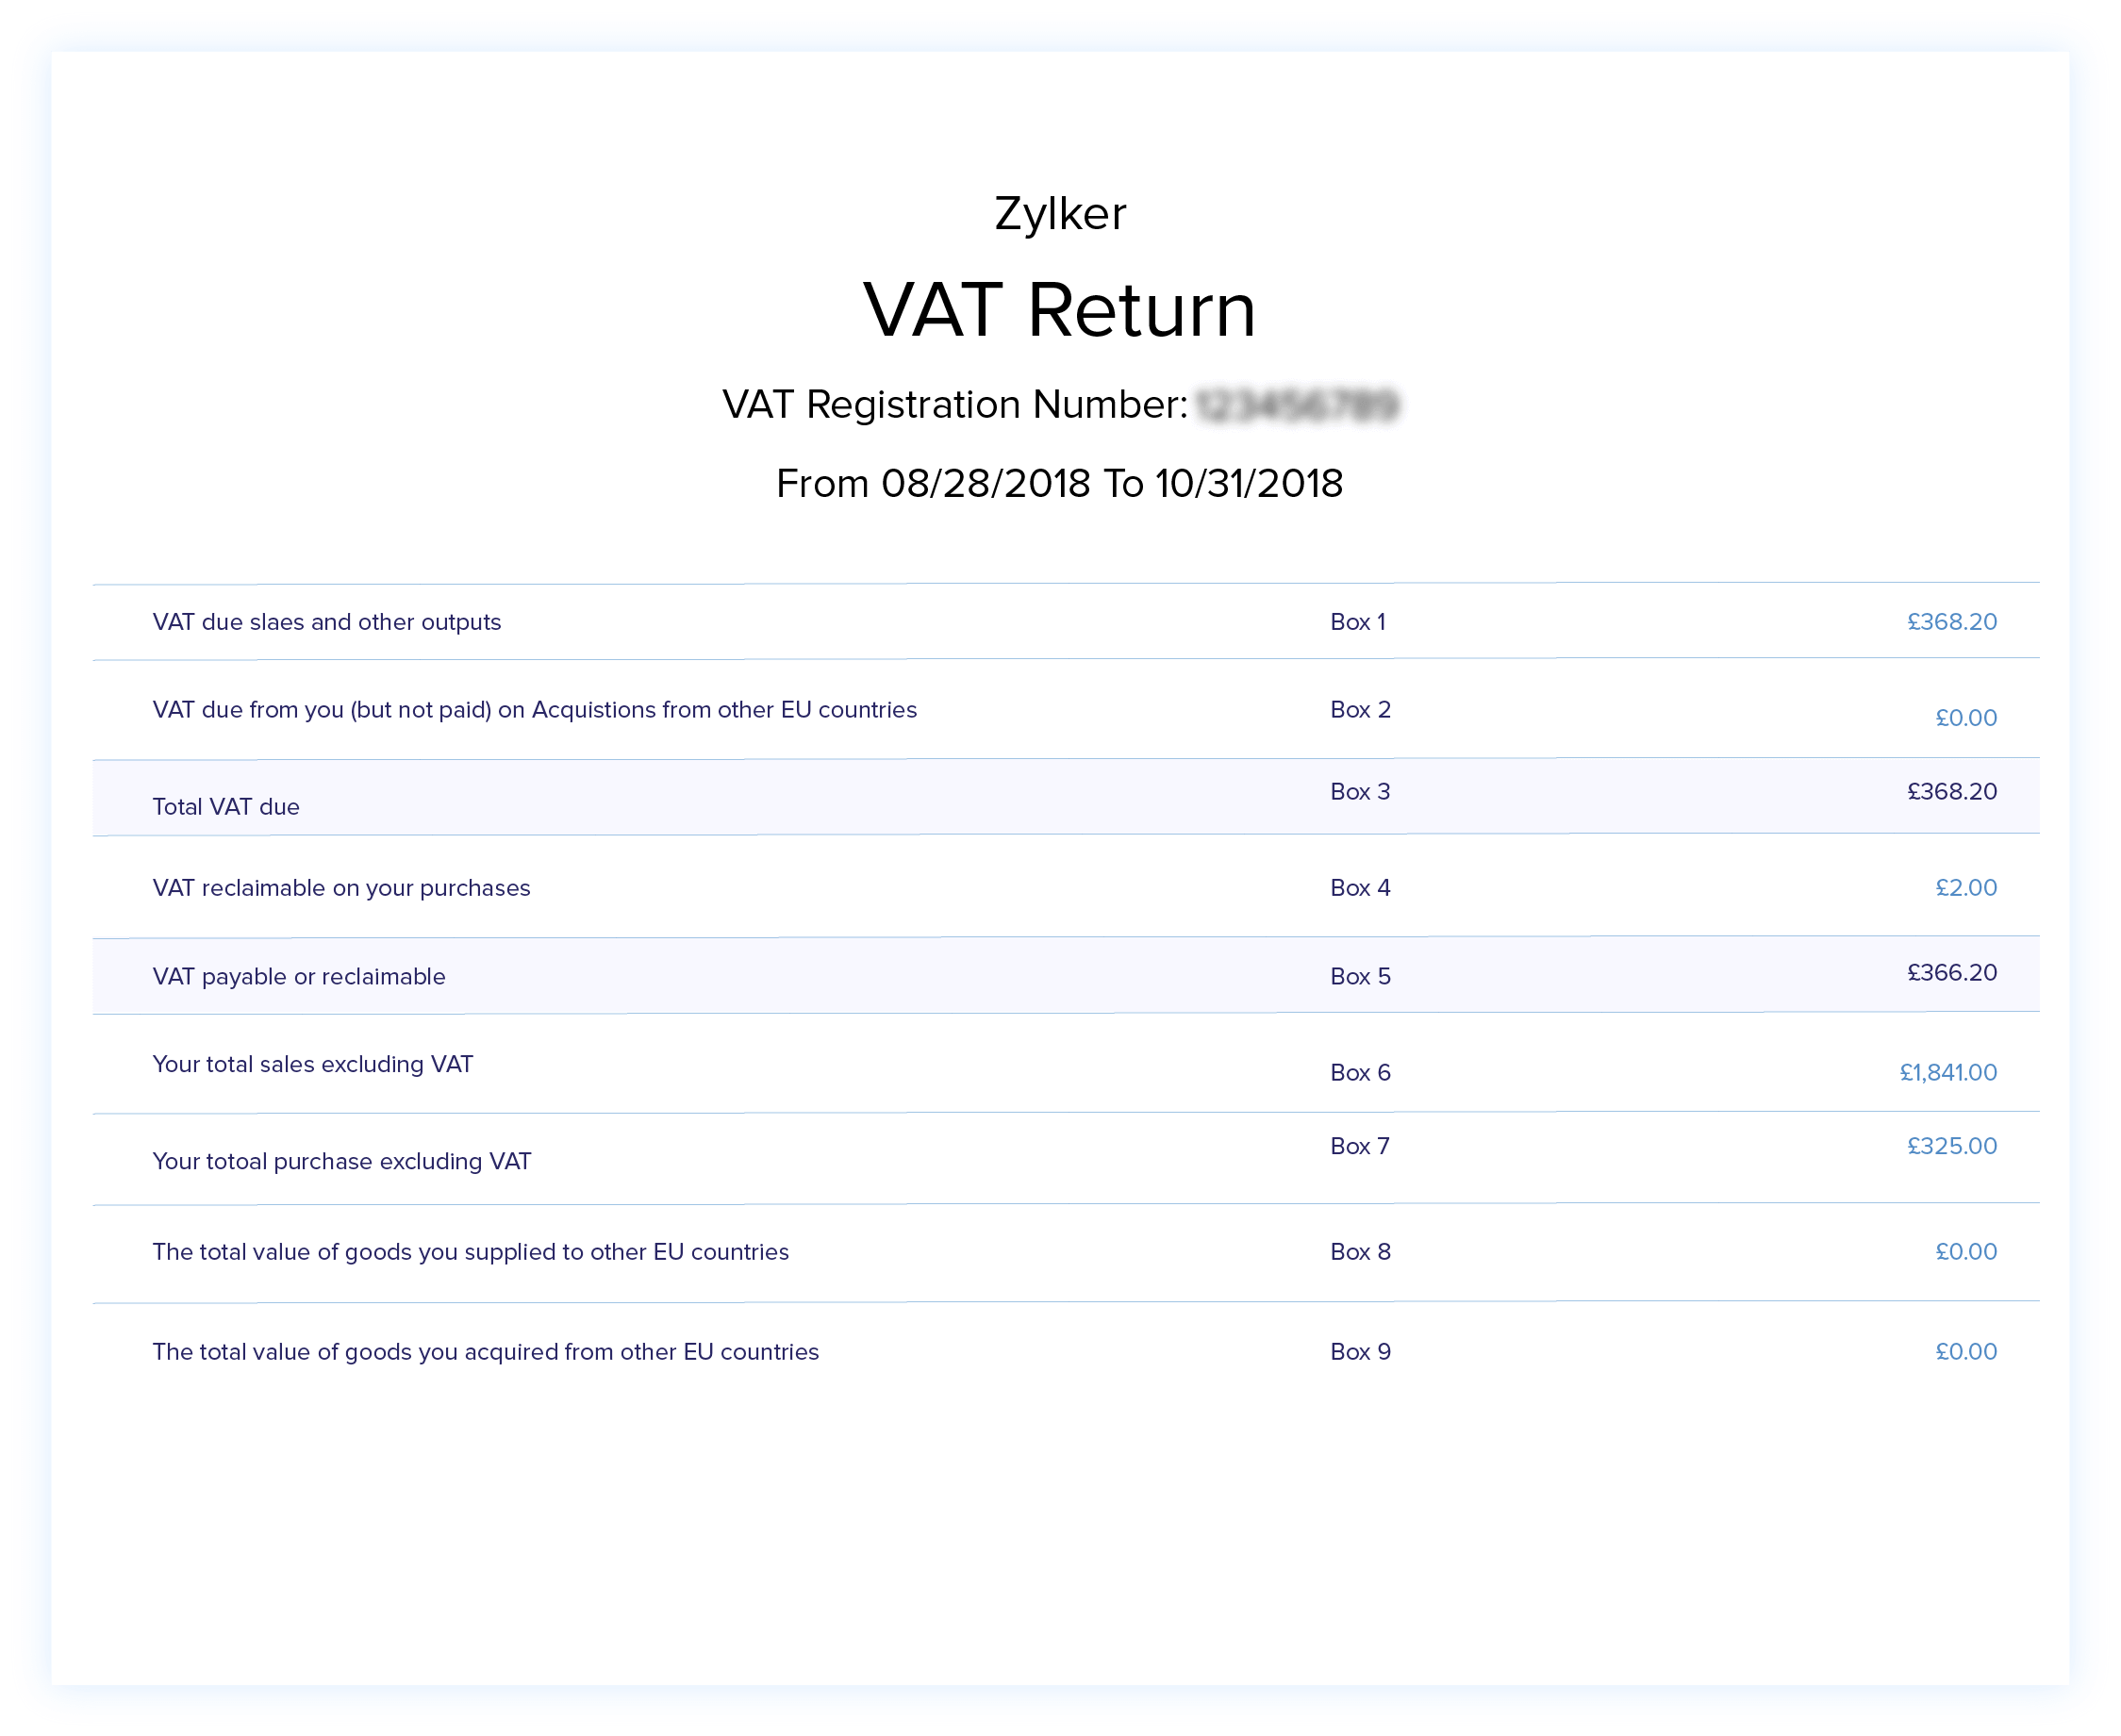 VAT Liability - VAT Reporting - VAT Accounting Software | Zoho Books